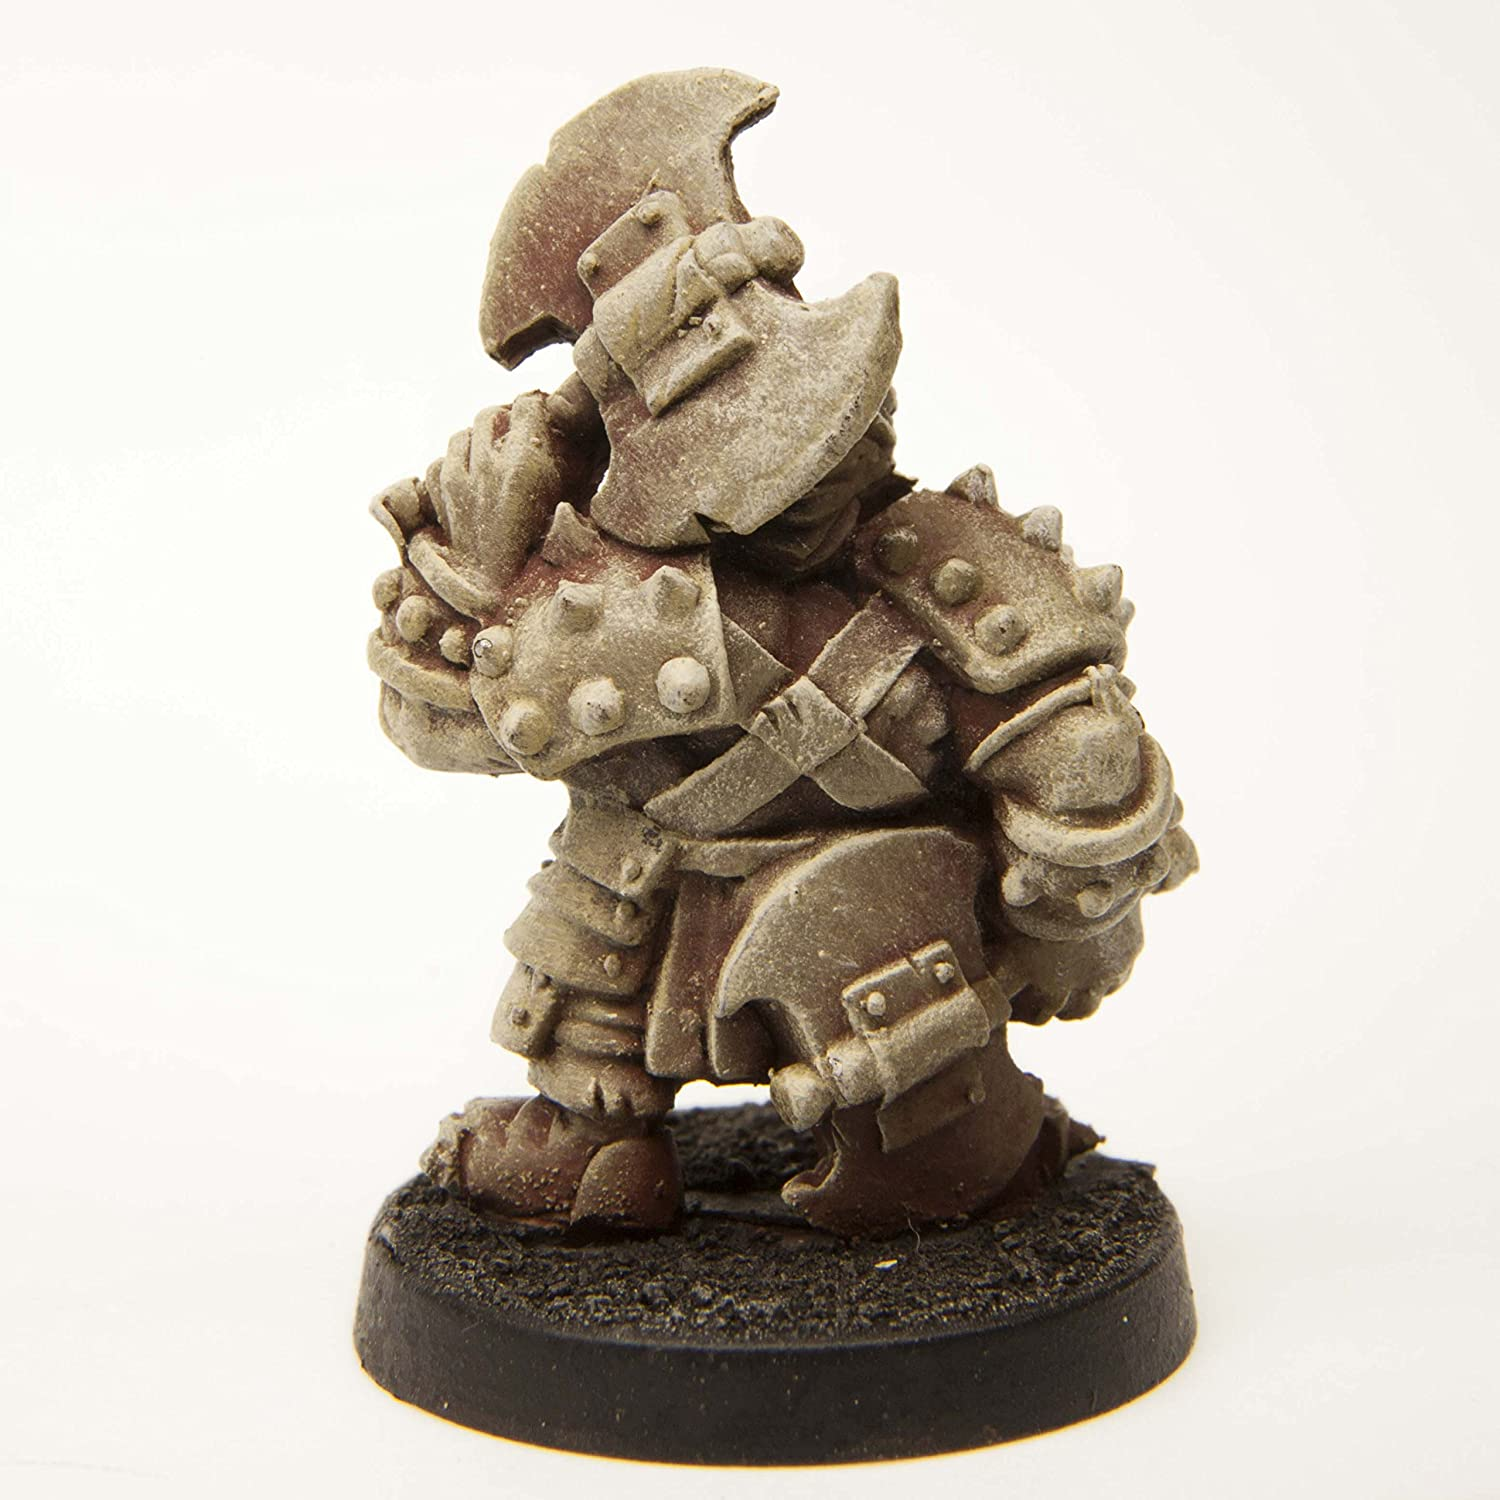 Stonehaven Dwarf Berserker Miniature Figure for 28mm Table top Wargames - Made in USA Stonehaven Miniatures